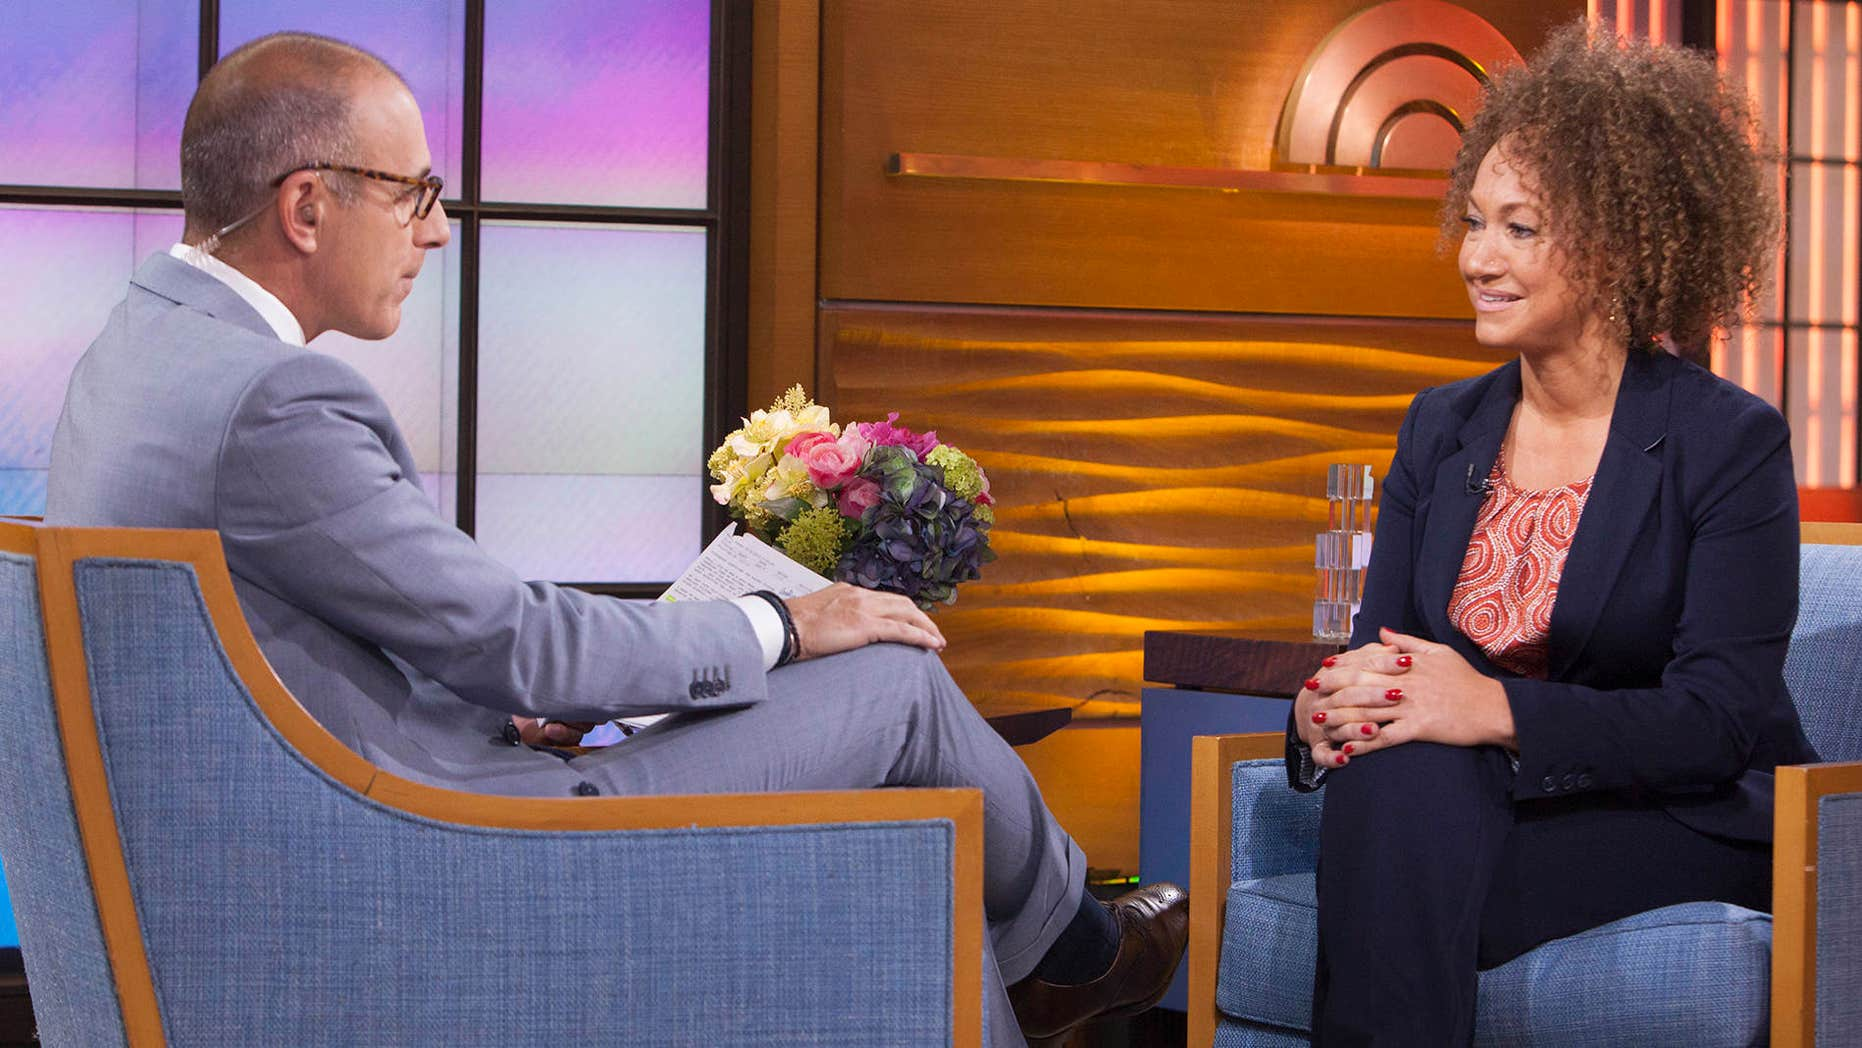 """June 16, 2015: In this image released by NBC News, former NAACP leader Rachel Dolezal appears on the """"Today"""" show during an interview with co-host Matt Lauer."""